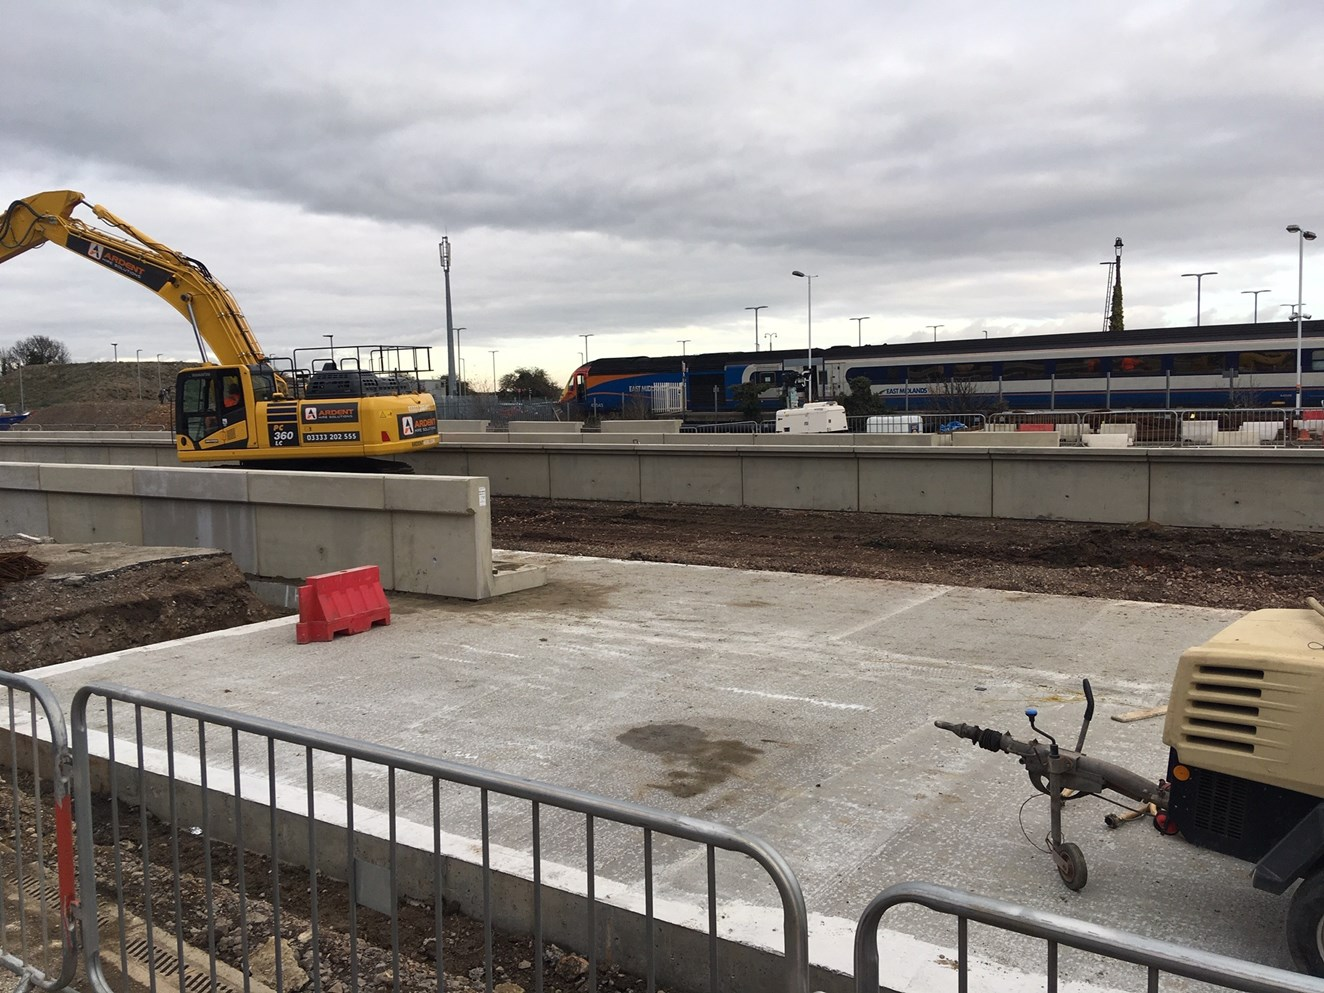 Major changes for passengers in East Midlands/South Yorkshire as Network Rail announces date for major upgrade to Midland Main Line: New platforms under construction at Market Harborough station